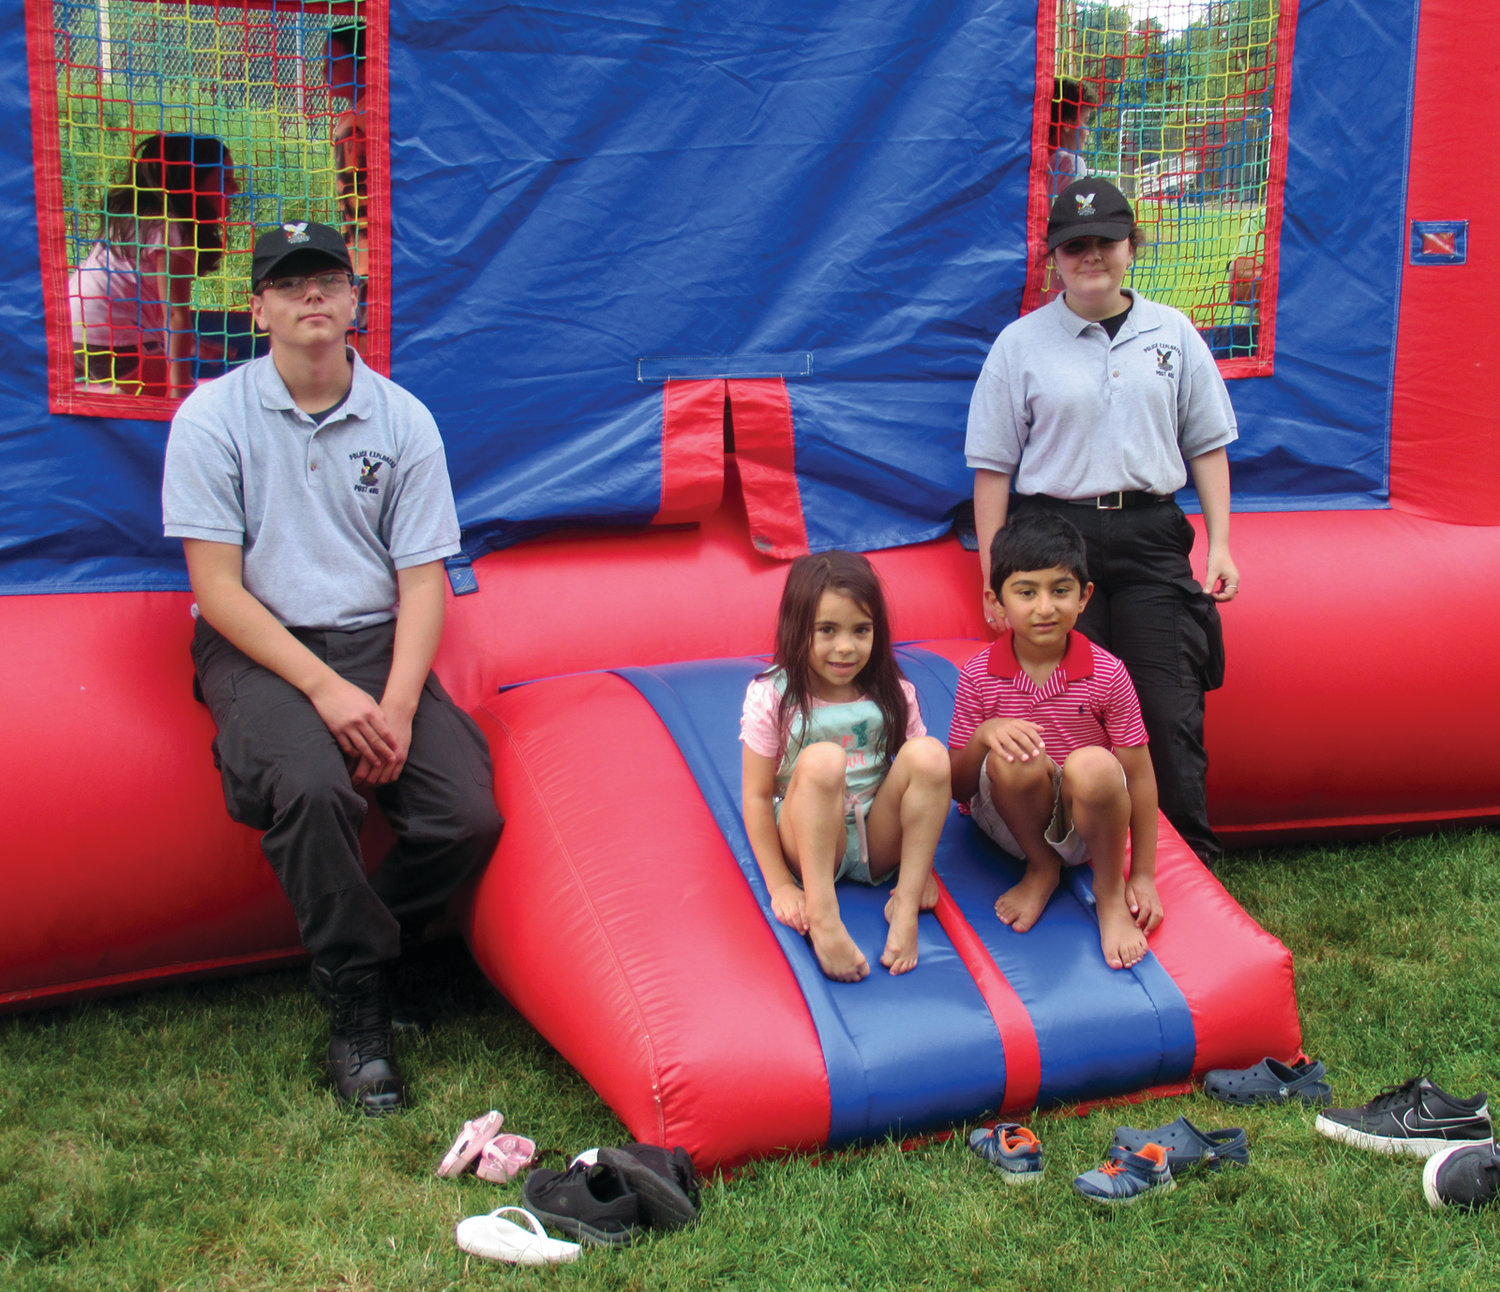 SPECIAL SAFETY: Explorers Devin Medeiros, left, and Kayla Desrosiers keep a watchful eye on Aliyah Ethier, 5, and Rayaan Buch, 6, who enjoyed this bounce house supplied by My Cousin Vinny's during the National Night Out celebration.